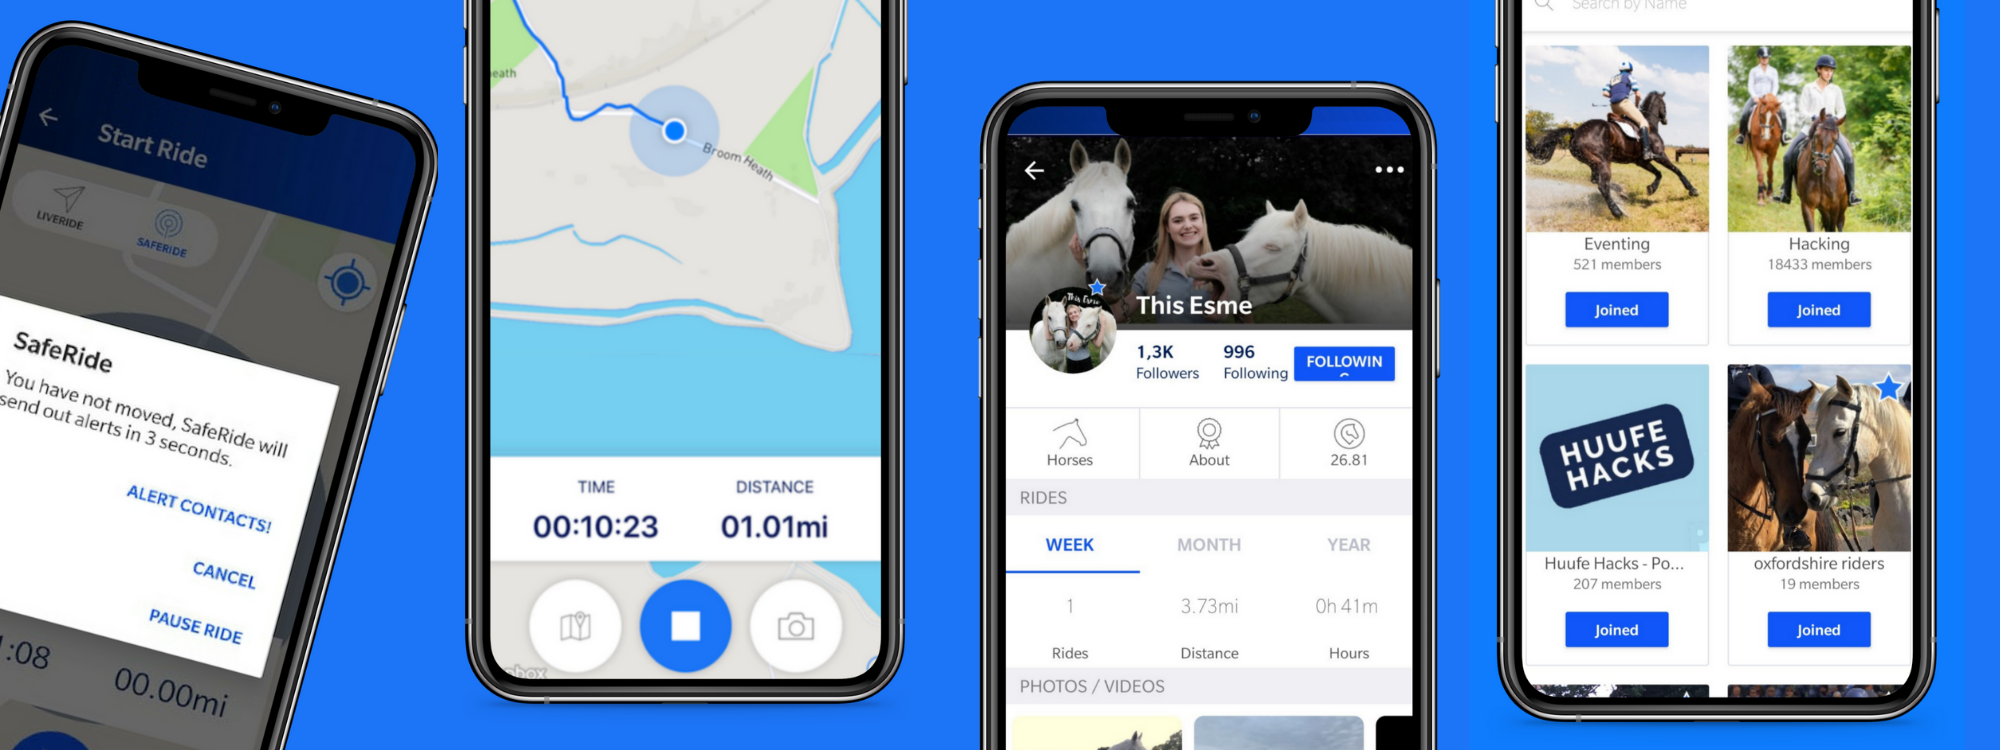 huufe the horse riding safety app screenshots